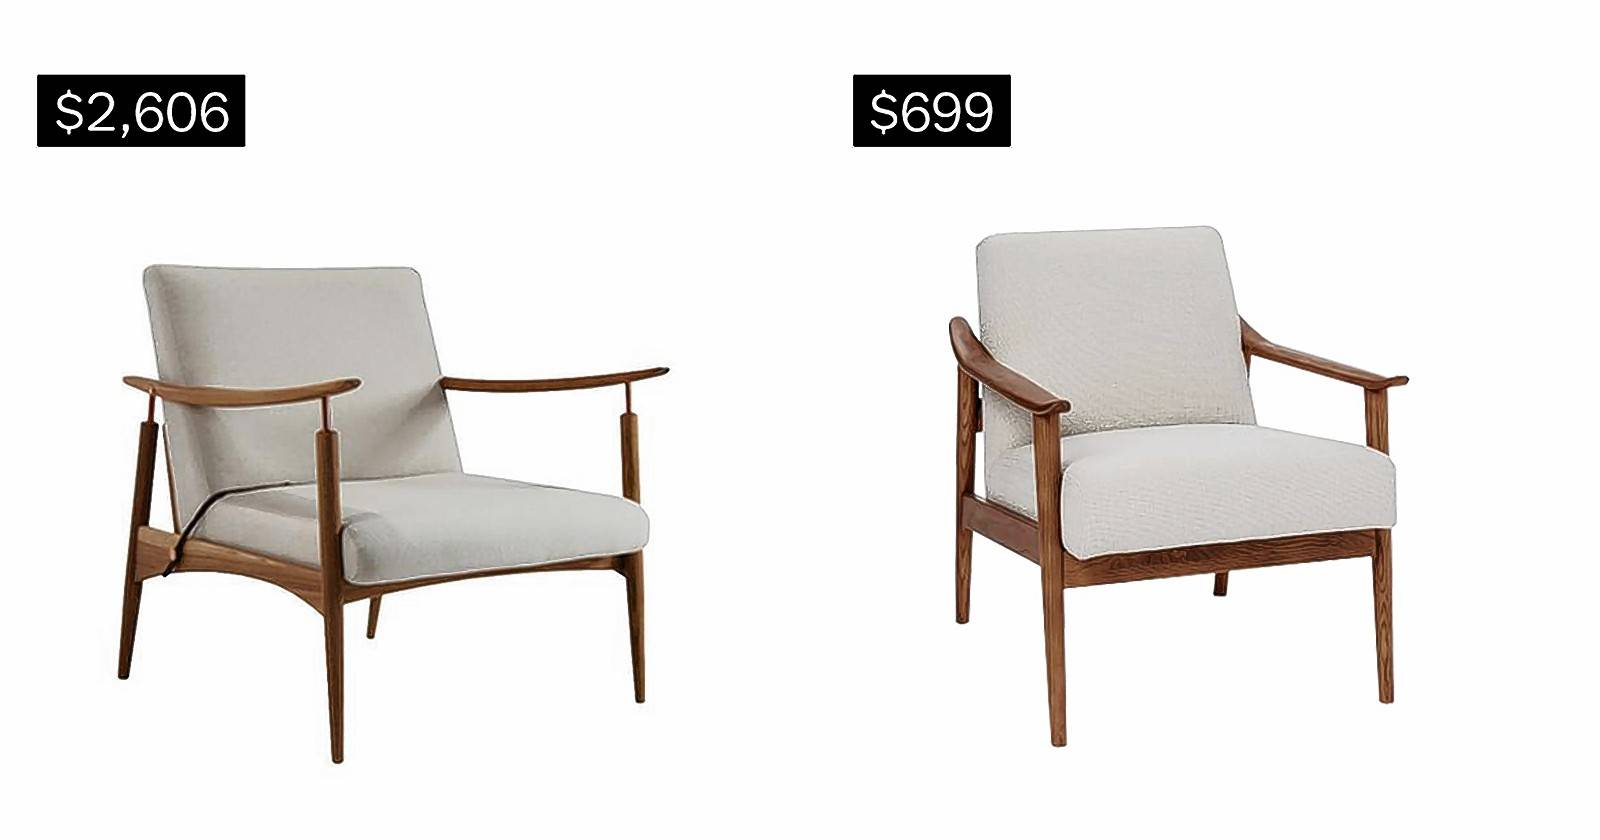 SPLURGE: Natalie chair, left. SAVE: Midcentury show wood chair in chunky basket weave.